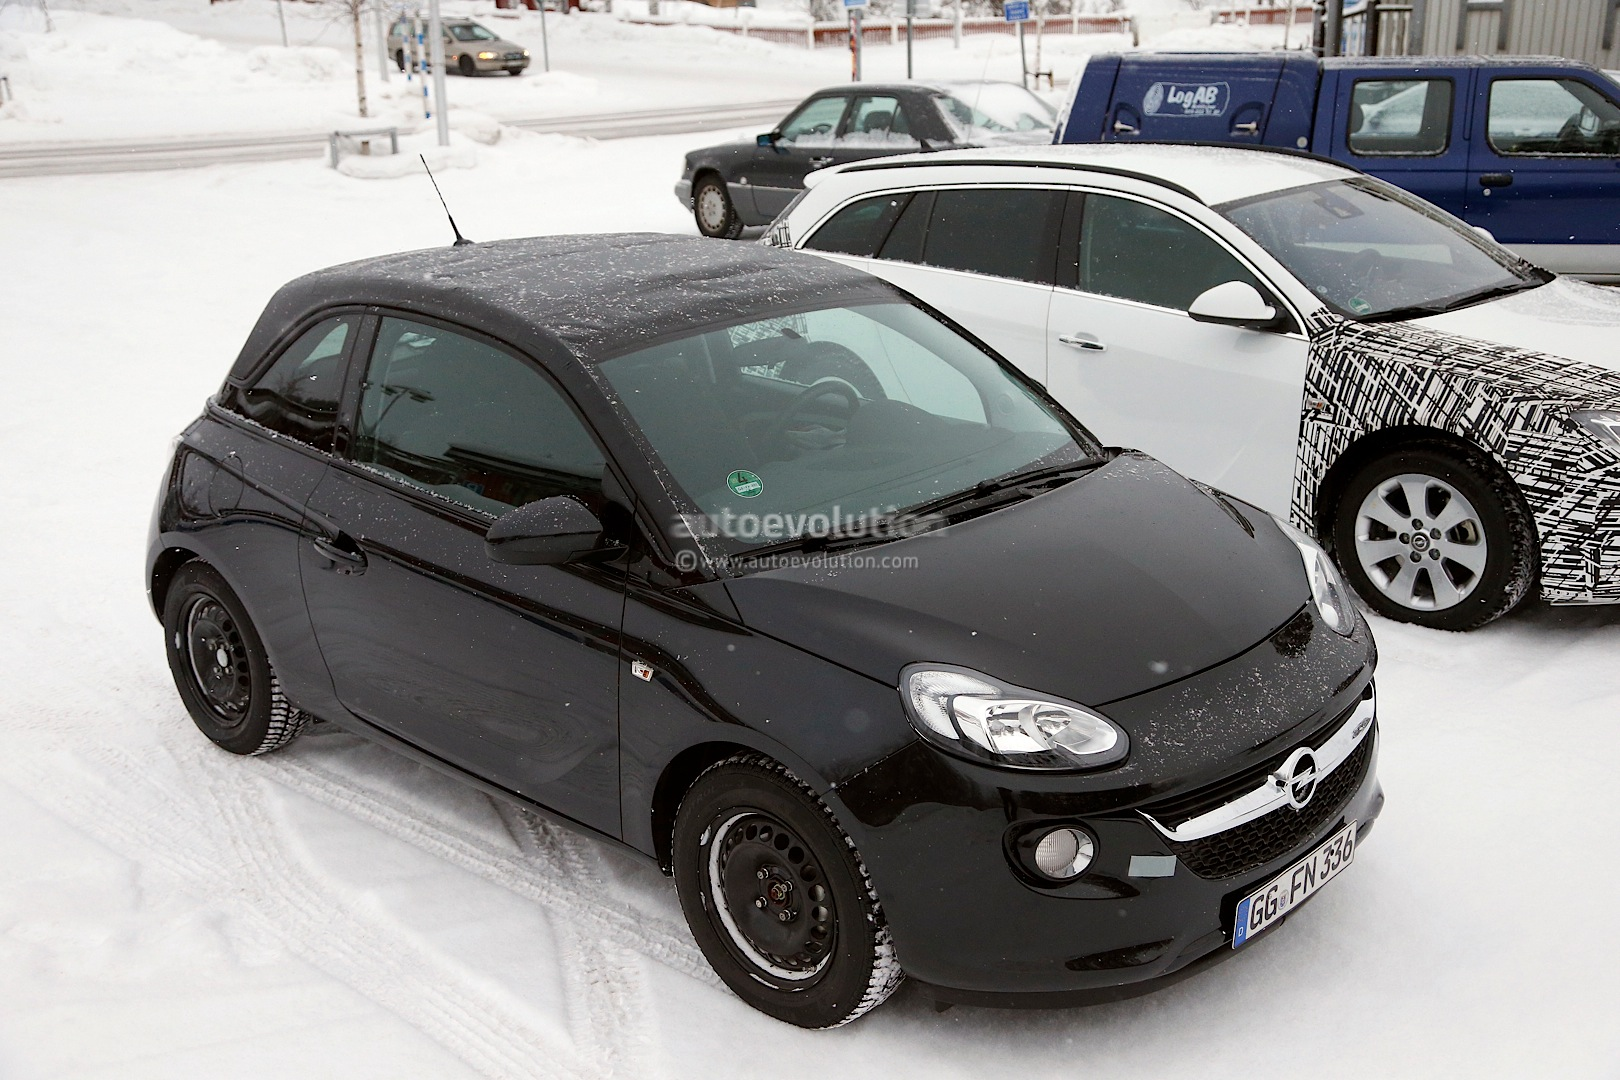 spyshots opel vauxhall adam cabrio winter testing autoevolution. Black Bedroom Furniture Sets. Home Design Ideas